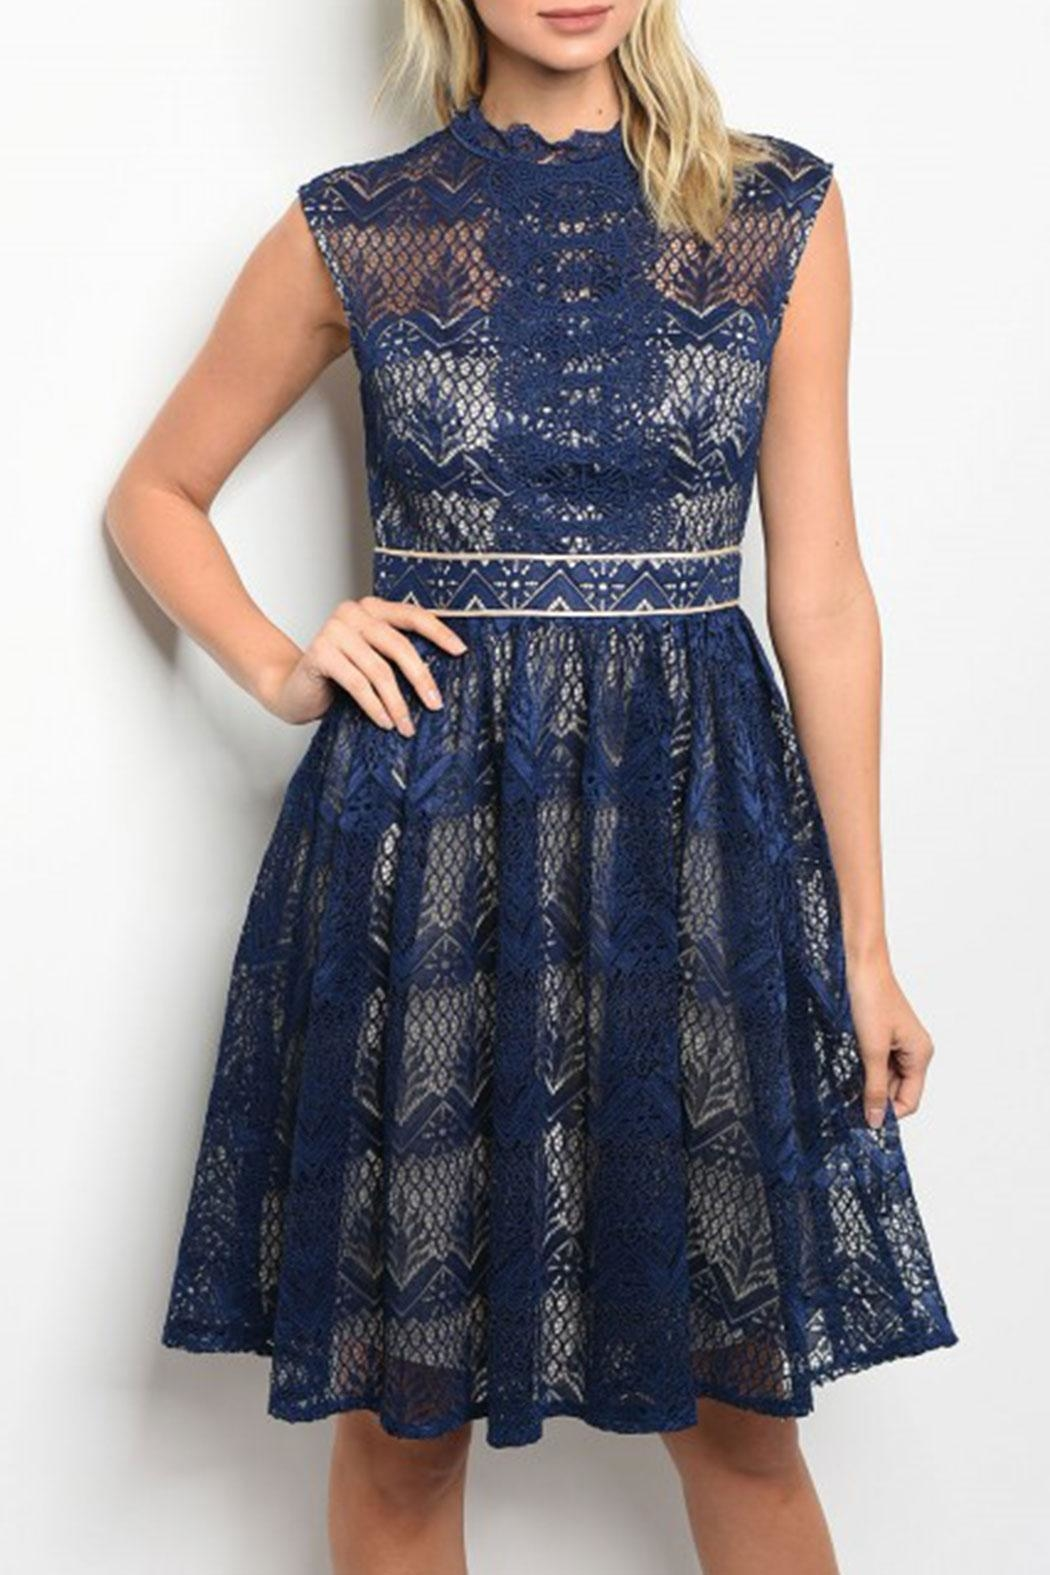 maniju Navy/nude Crochet Dress - Main Image